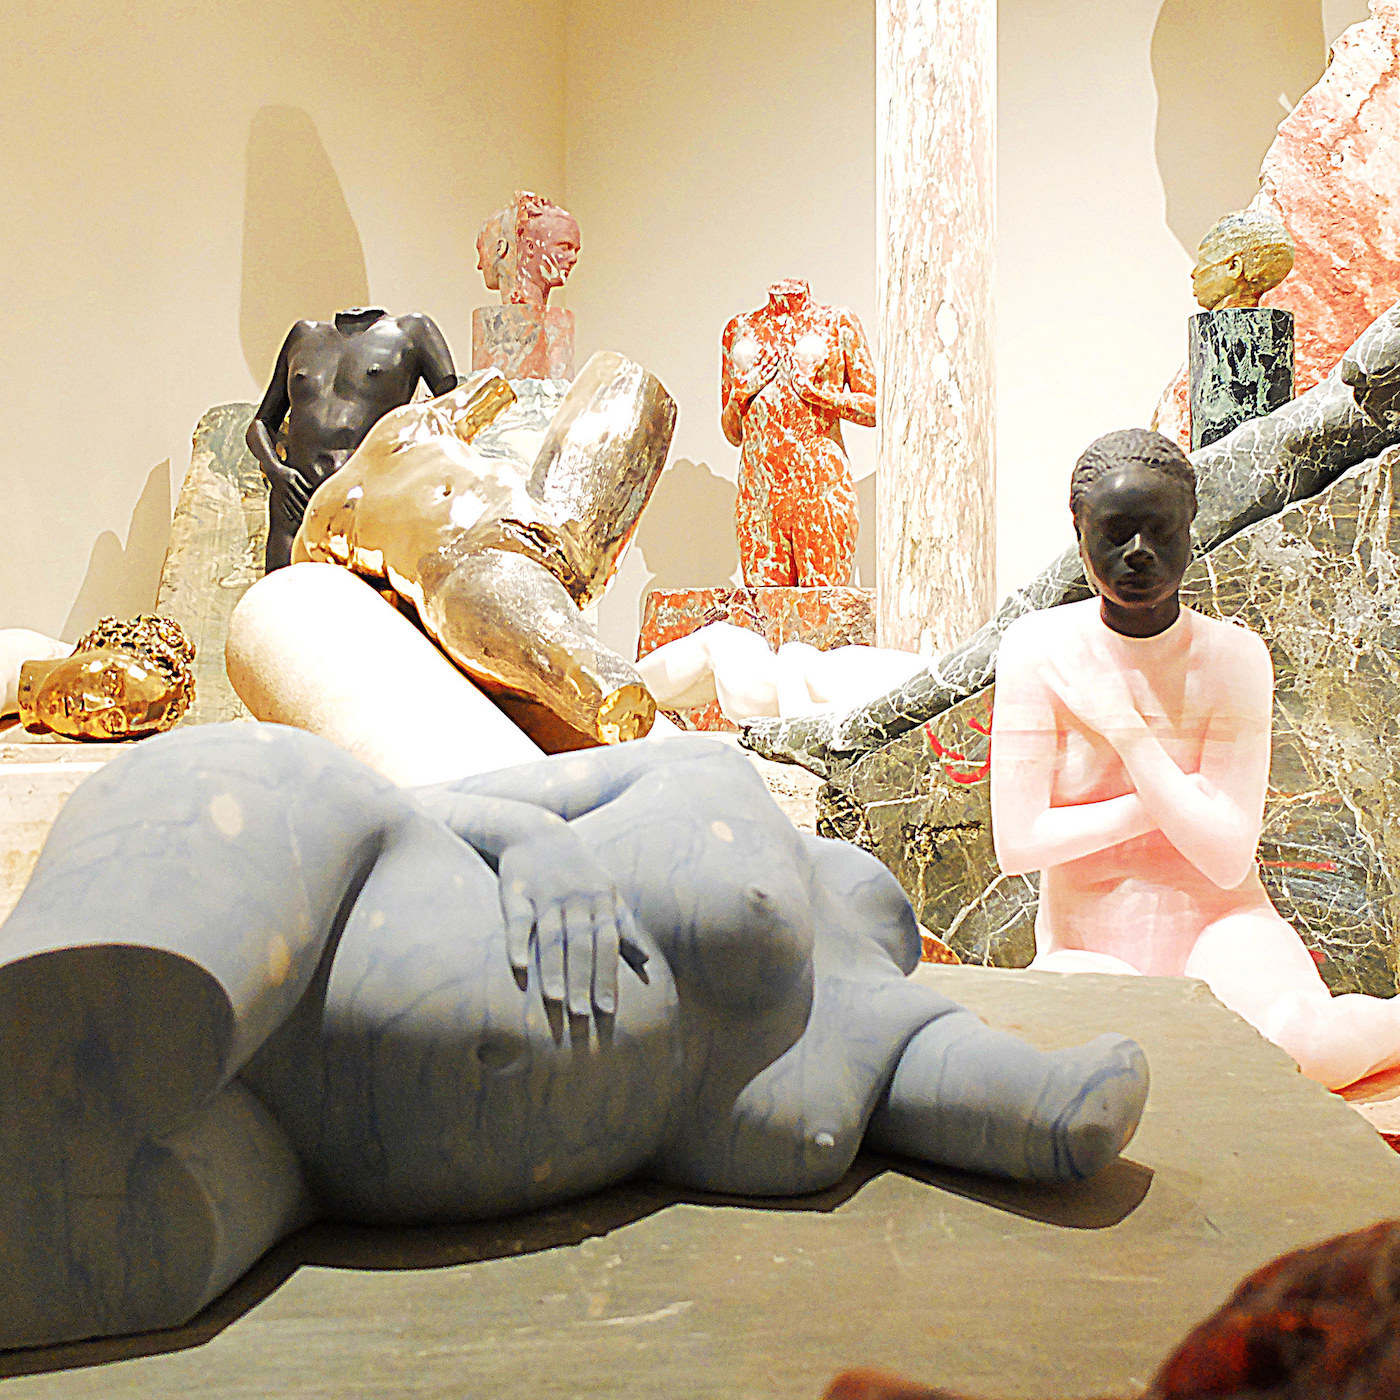 "Vanessa Beecroft, ""Le Membre Fantôme"" at the 2015 Venice Biennale (photo by Fabio Omero via Flickr, used under CC BY-SA 2.0 license) (click to enlarge)"